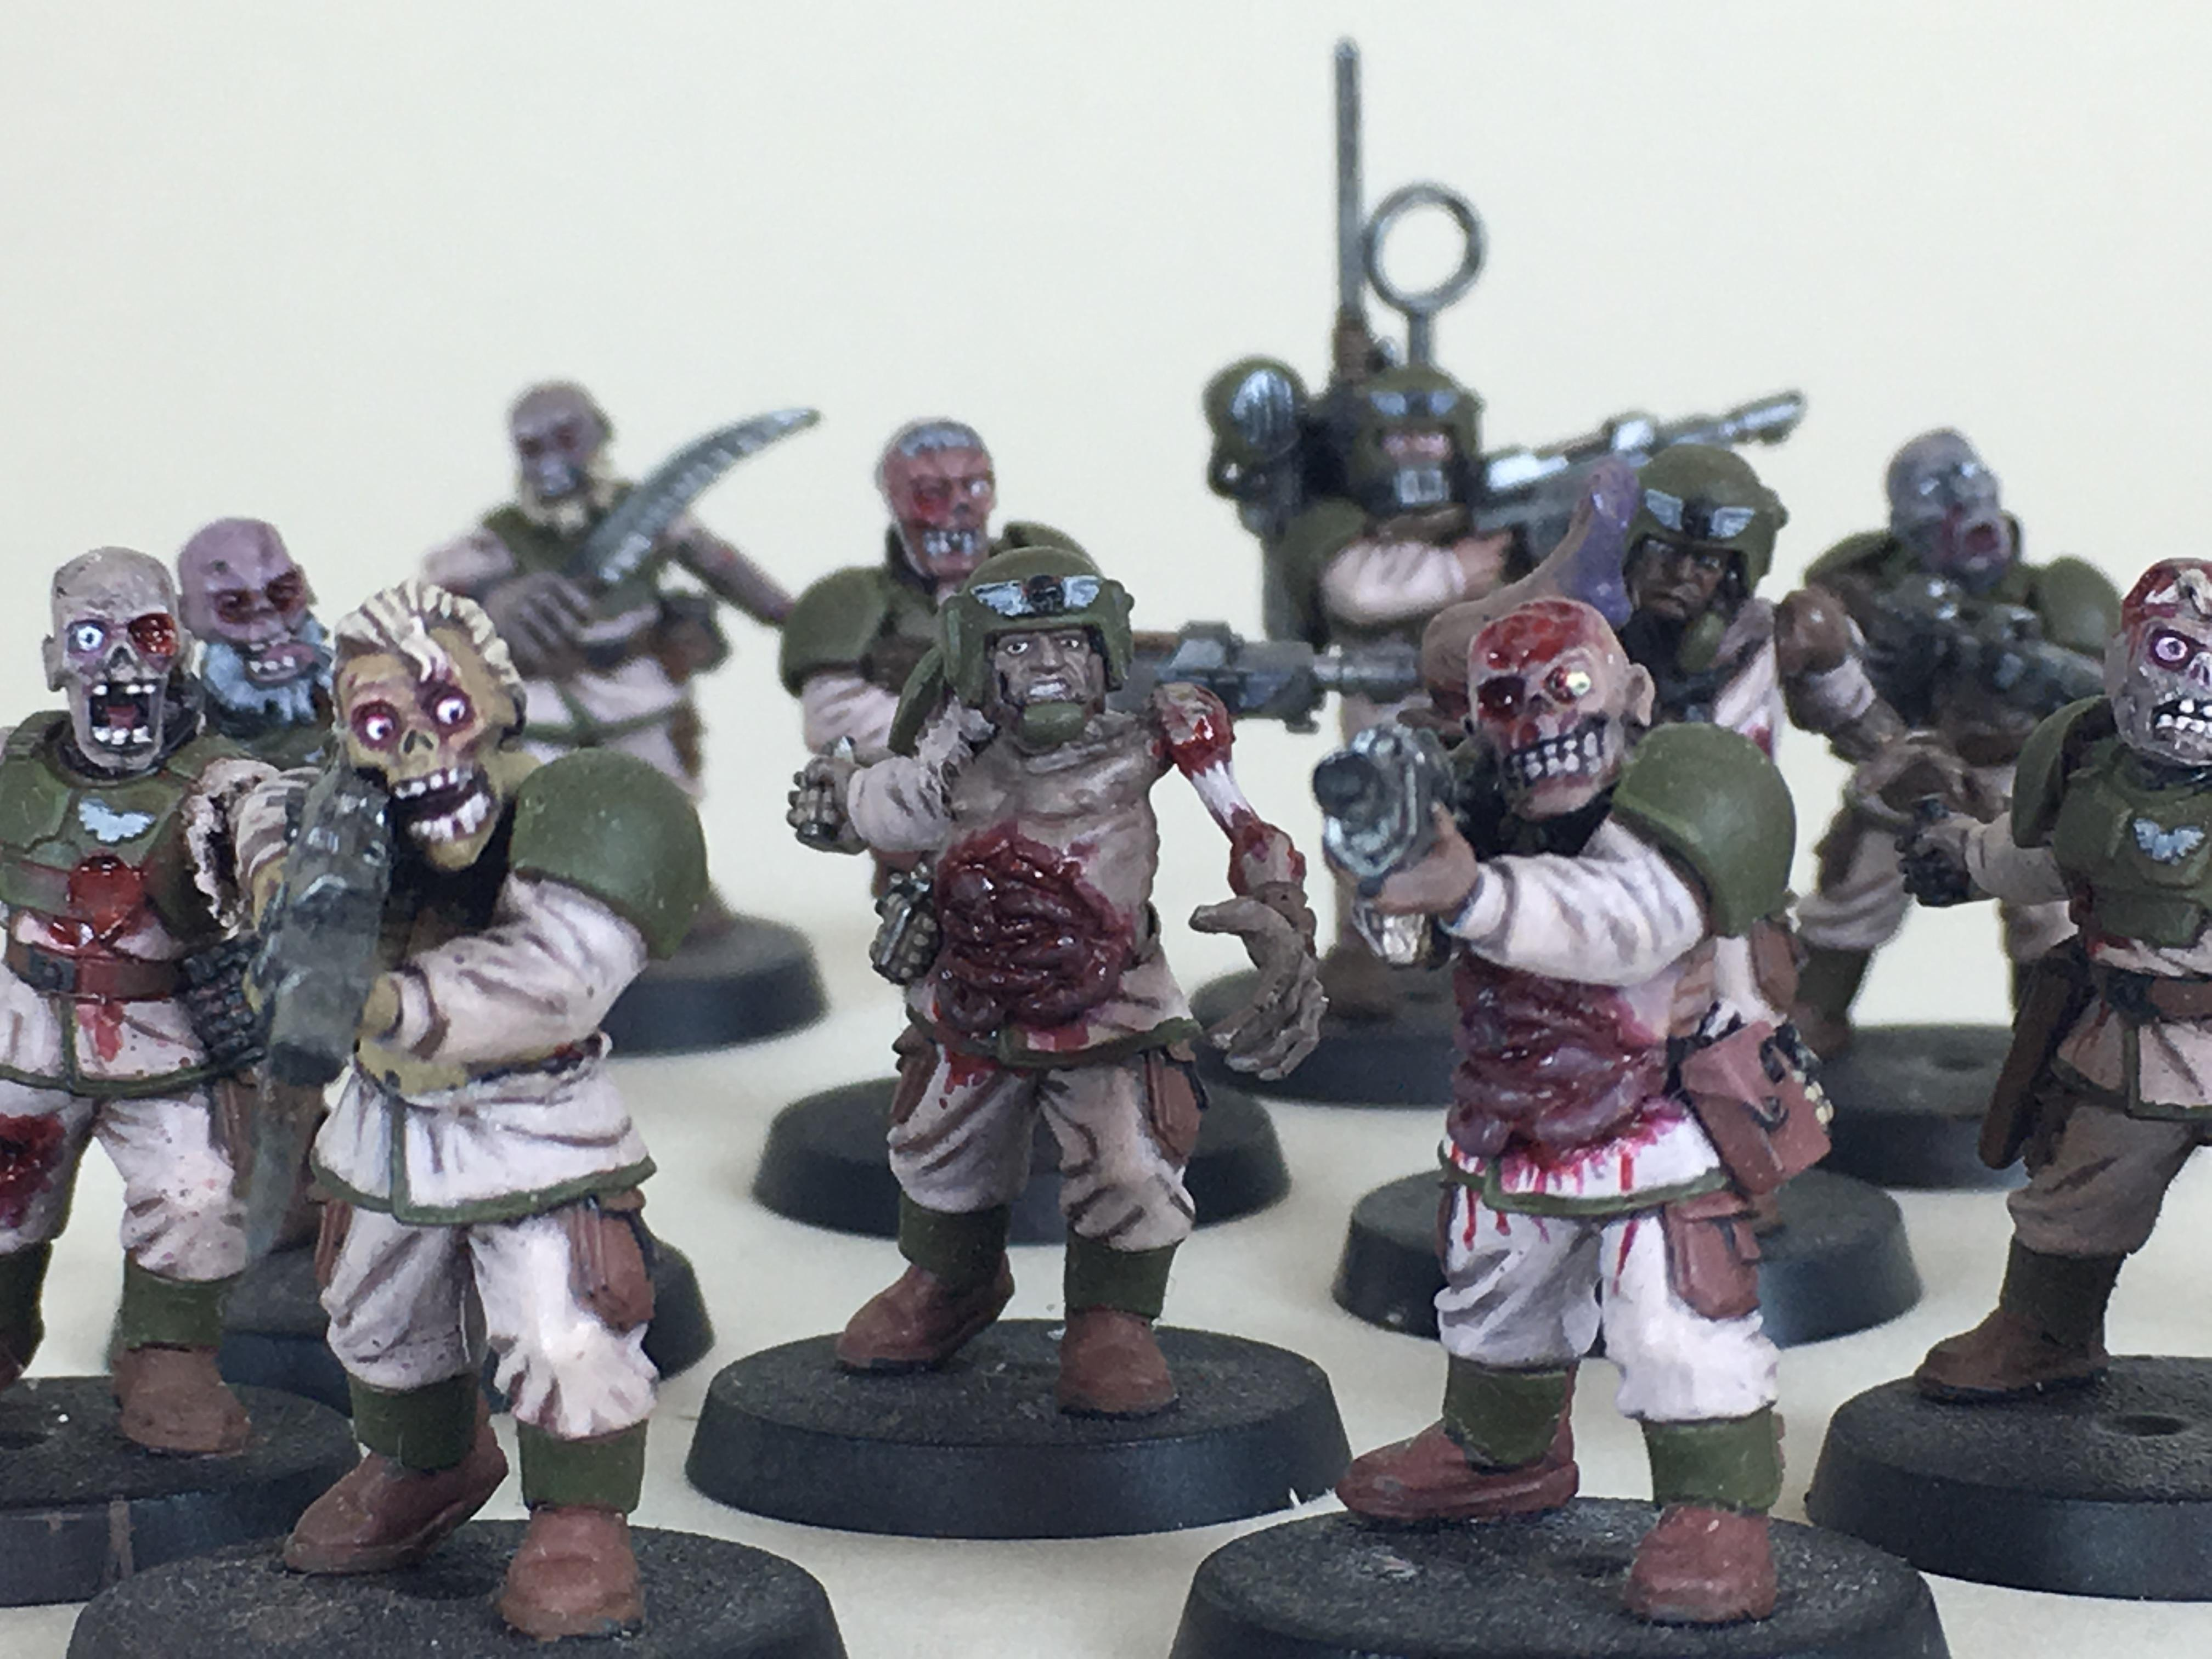 Chaos, Cultist, Imperial Guard, Lords Of Decay, Nurgle, Nurgle's Rot, Plague Cultist, Plague Zombies, Traitor, Traitor Guard, Typhus, Warhammer 40,000, Zombie